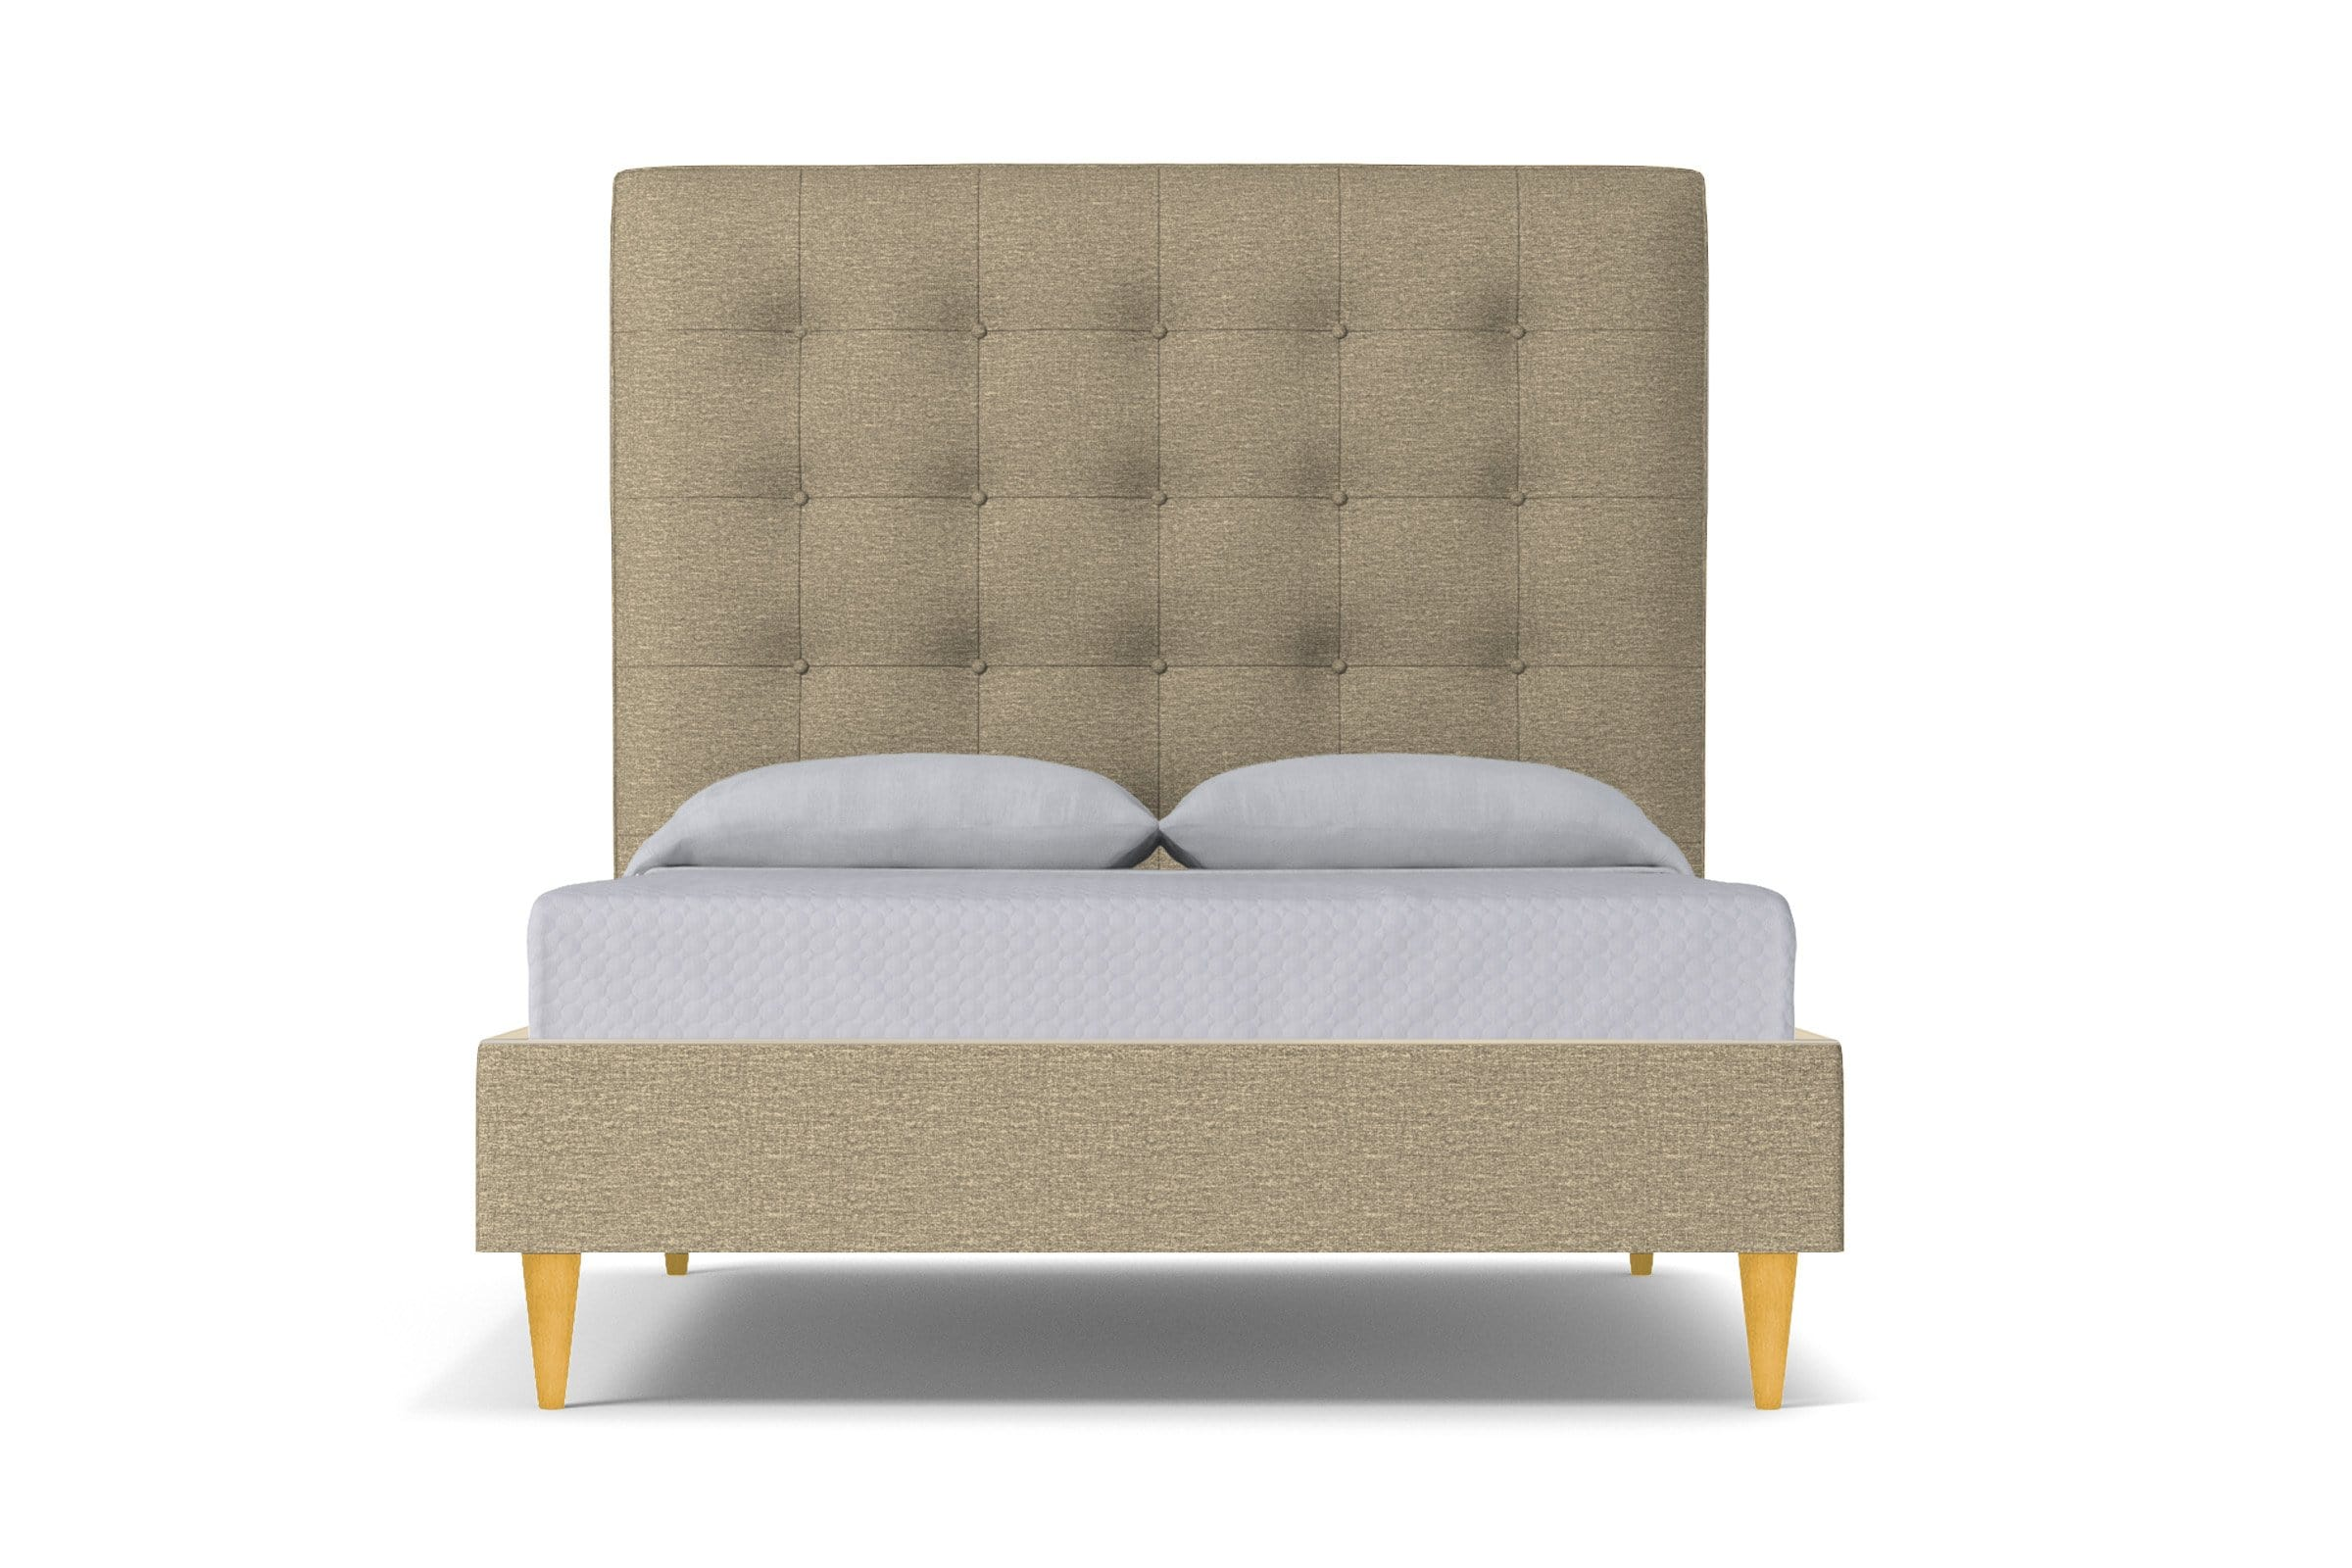 Palmer Upholstered Bed - Queen Size - Taupe - Bedroom Furniture sold by Apt2B